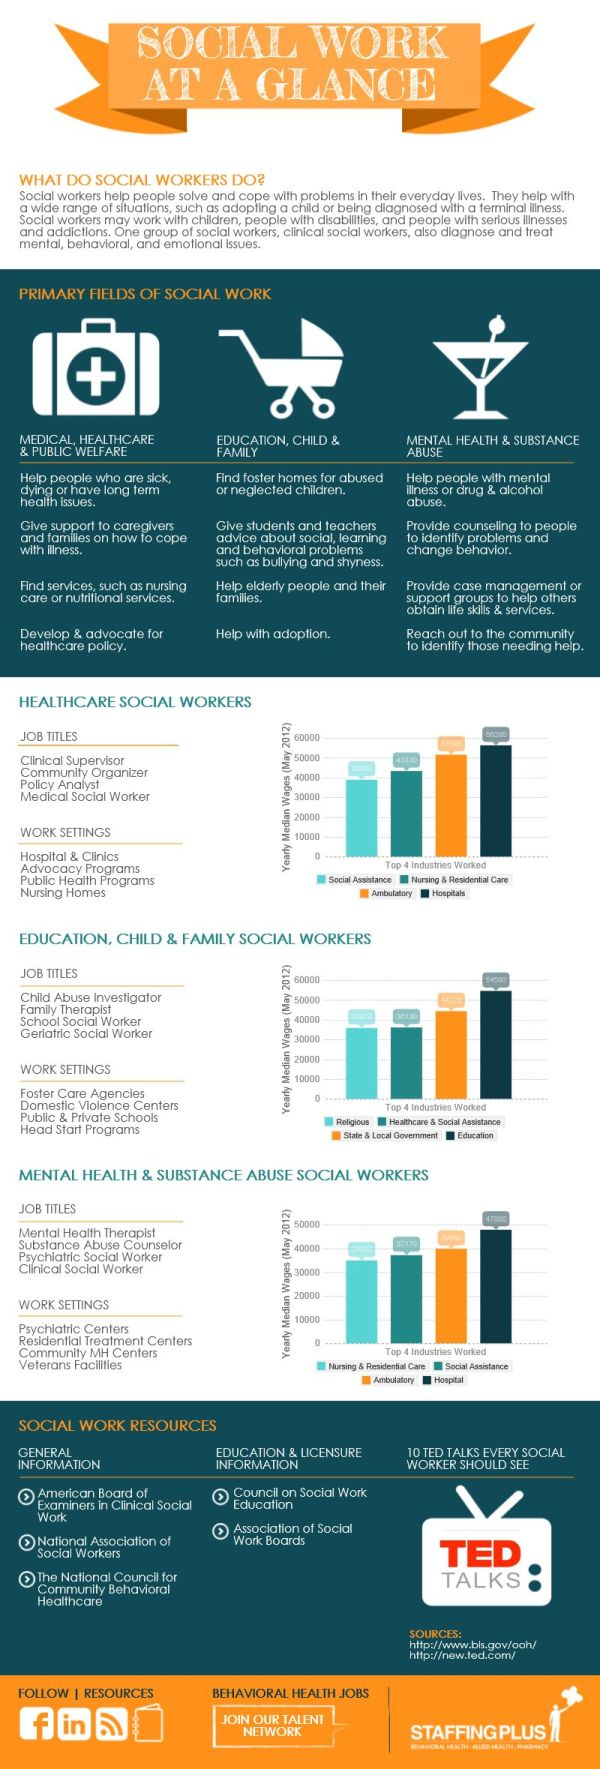 In Celebration of Social Workers [INFOGRAPHIC] Social Work Month 2014 NASW